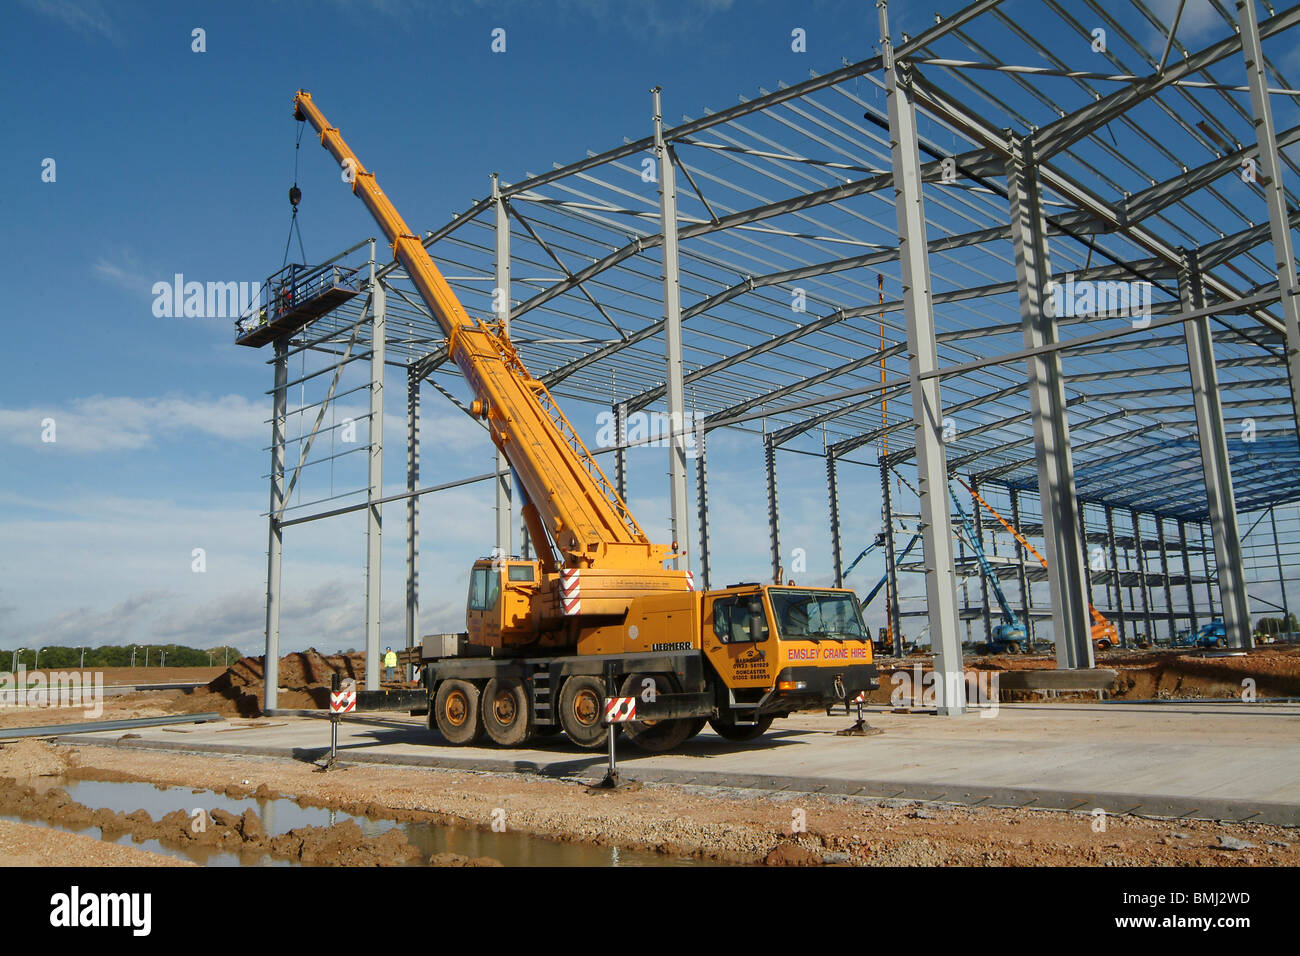 huge mobile crane working on a building site in england stock photo royalty free image. Black Bedroom Furniture Sets. Home Design Ideas